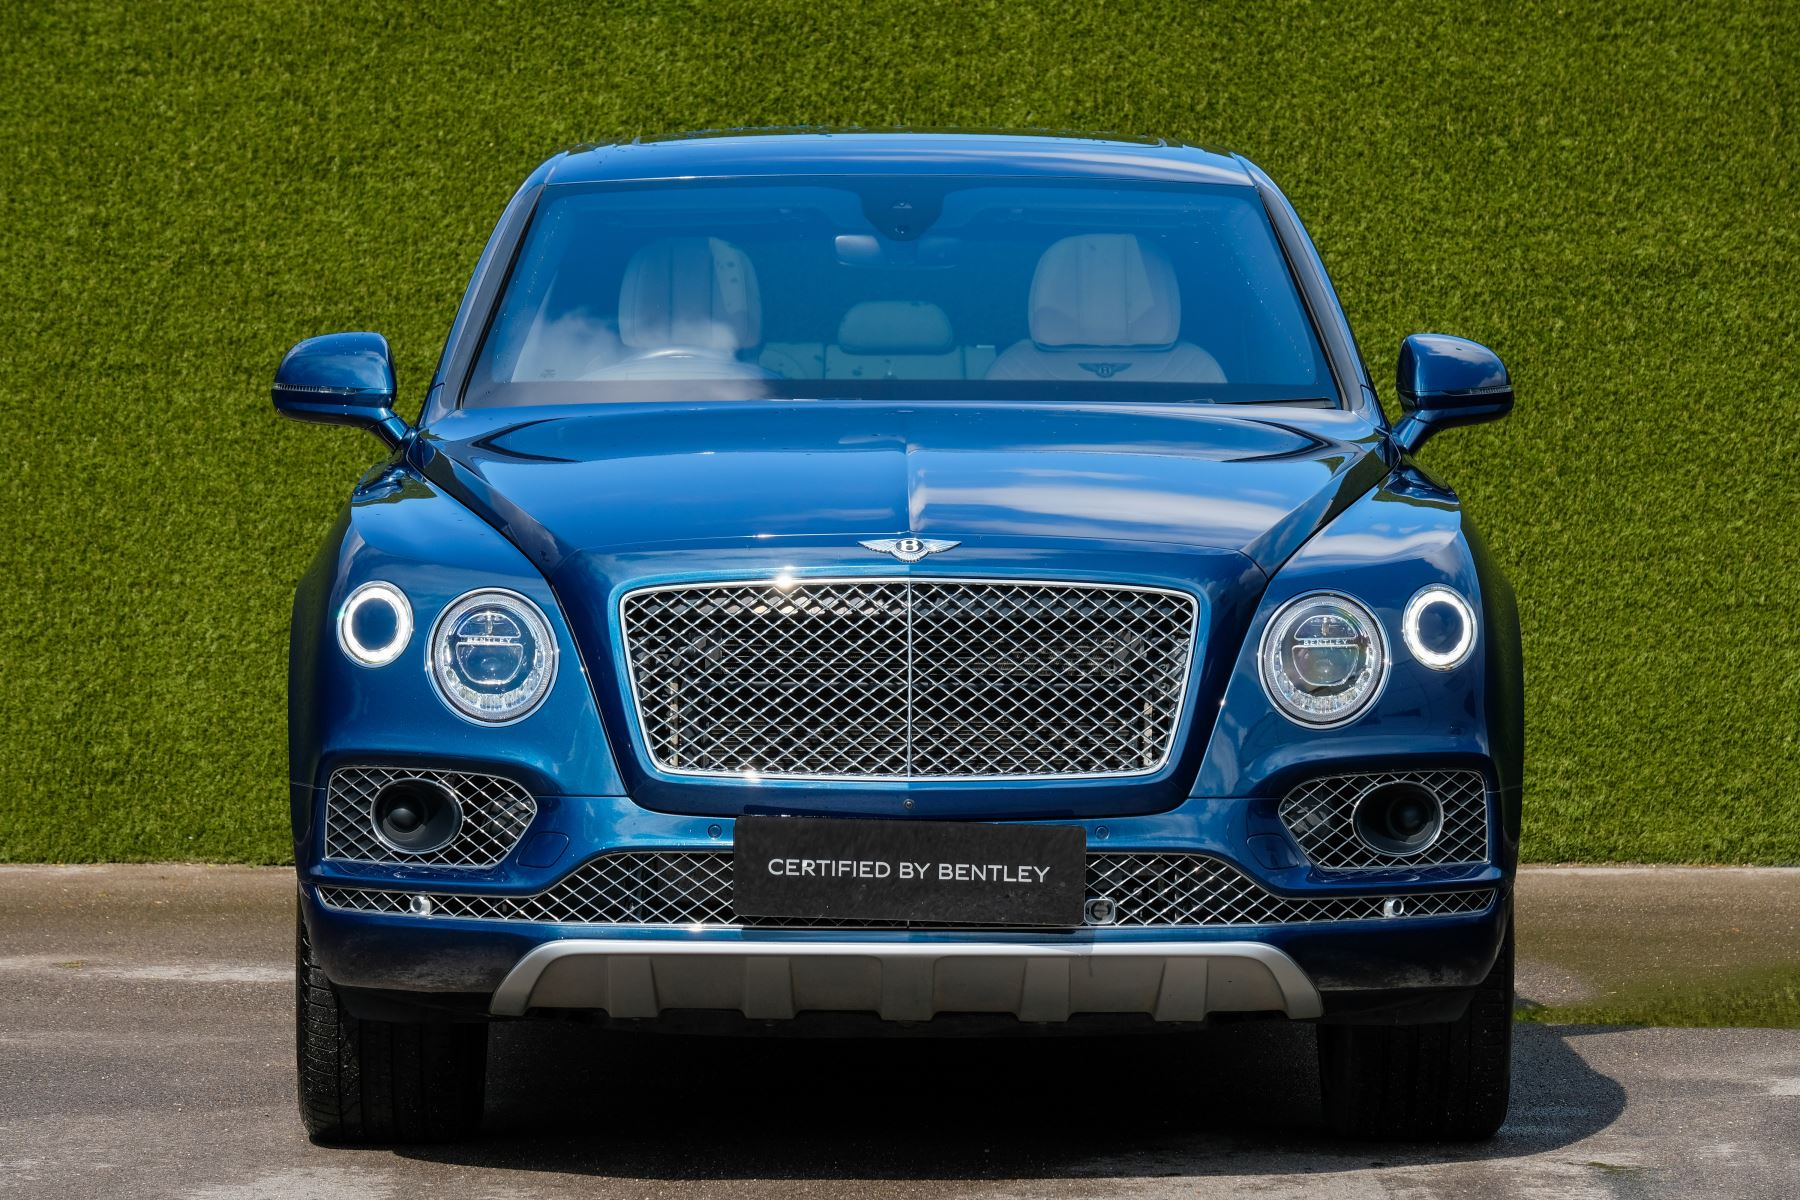 Bentley Bentayga 6.0 W12 - All Terrain, Sunshine, City and Touring Specification image 2